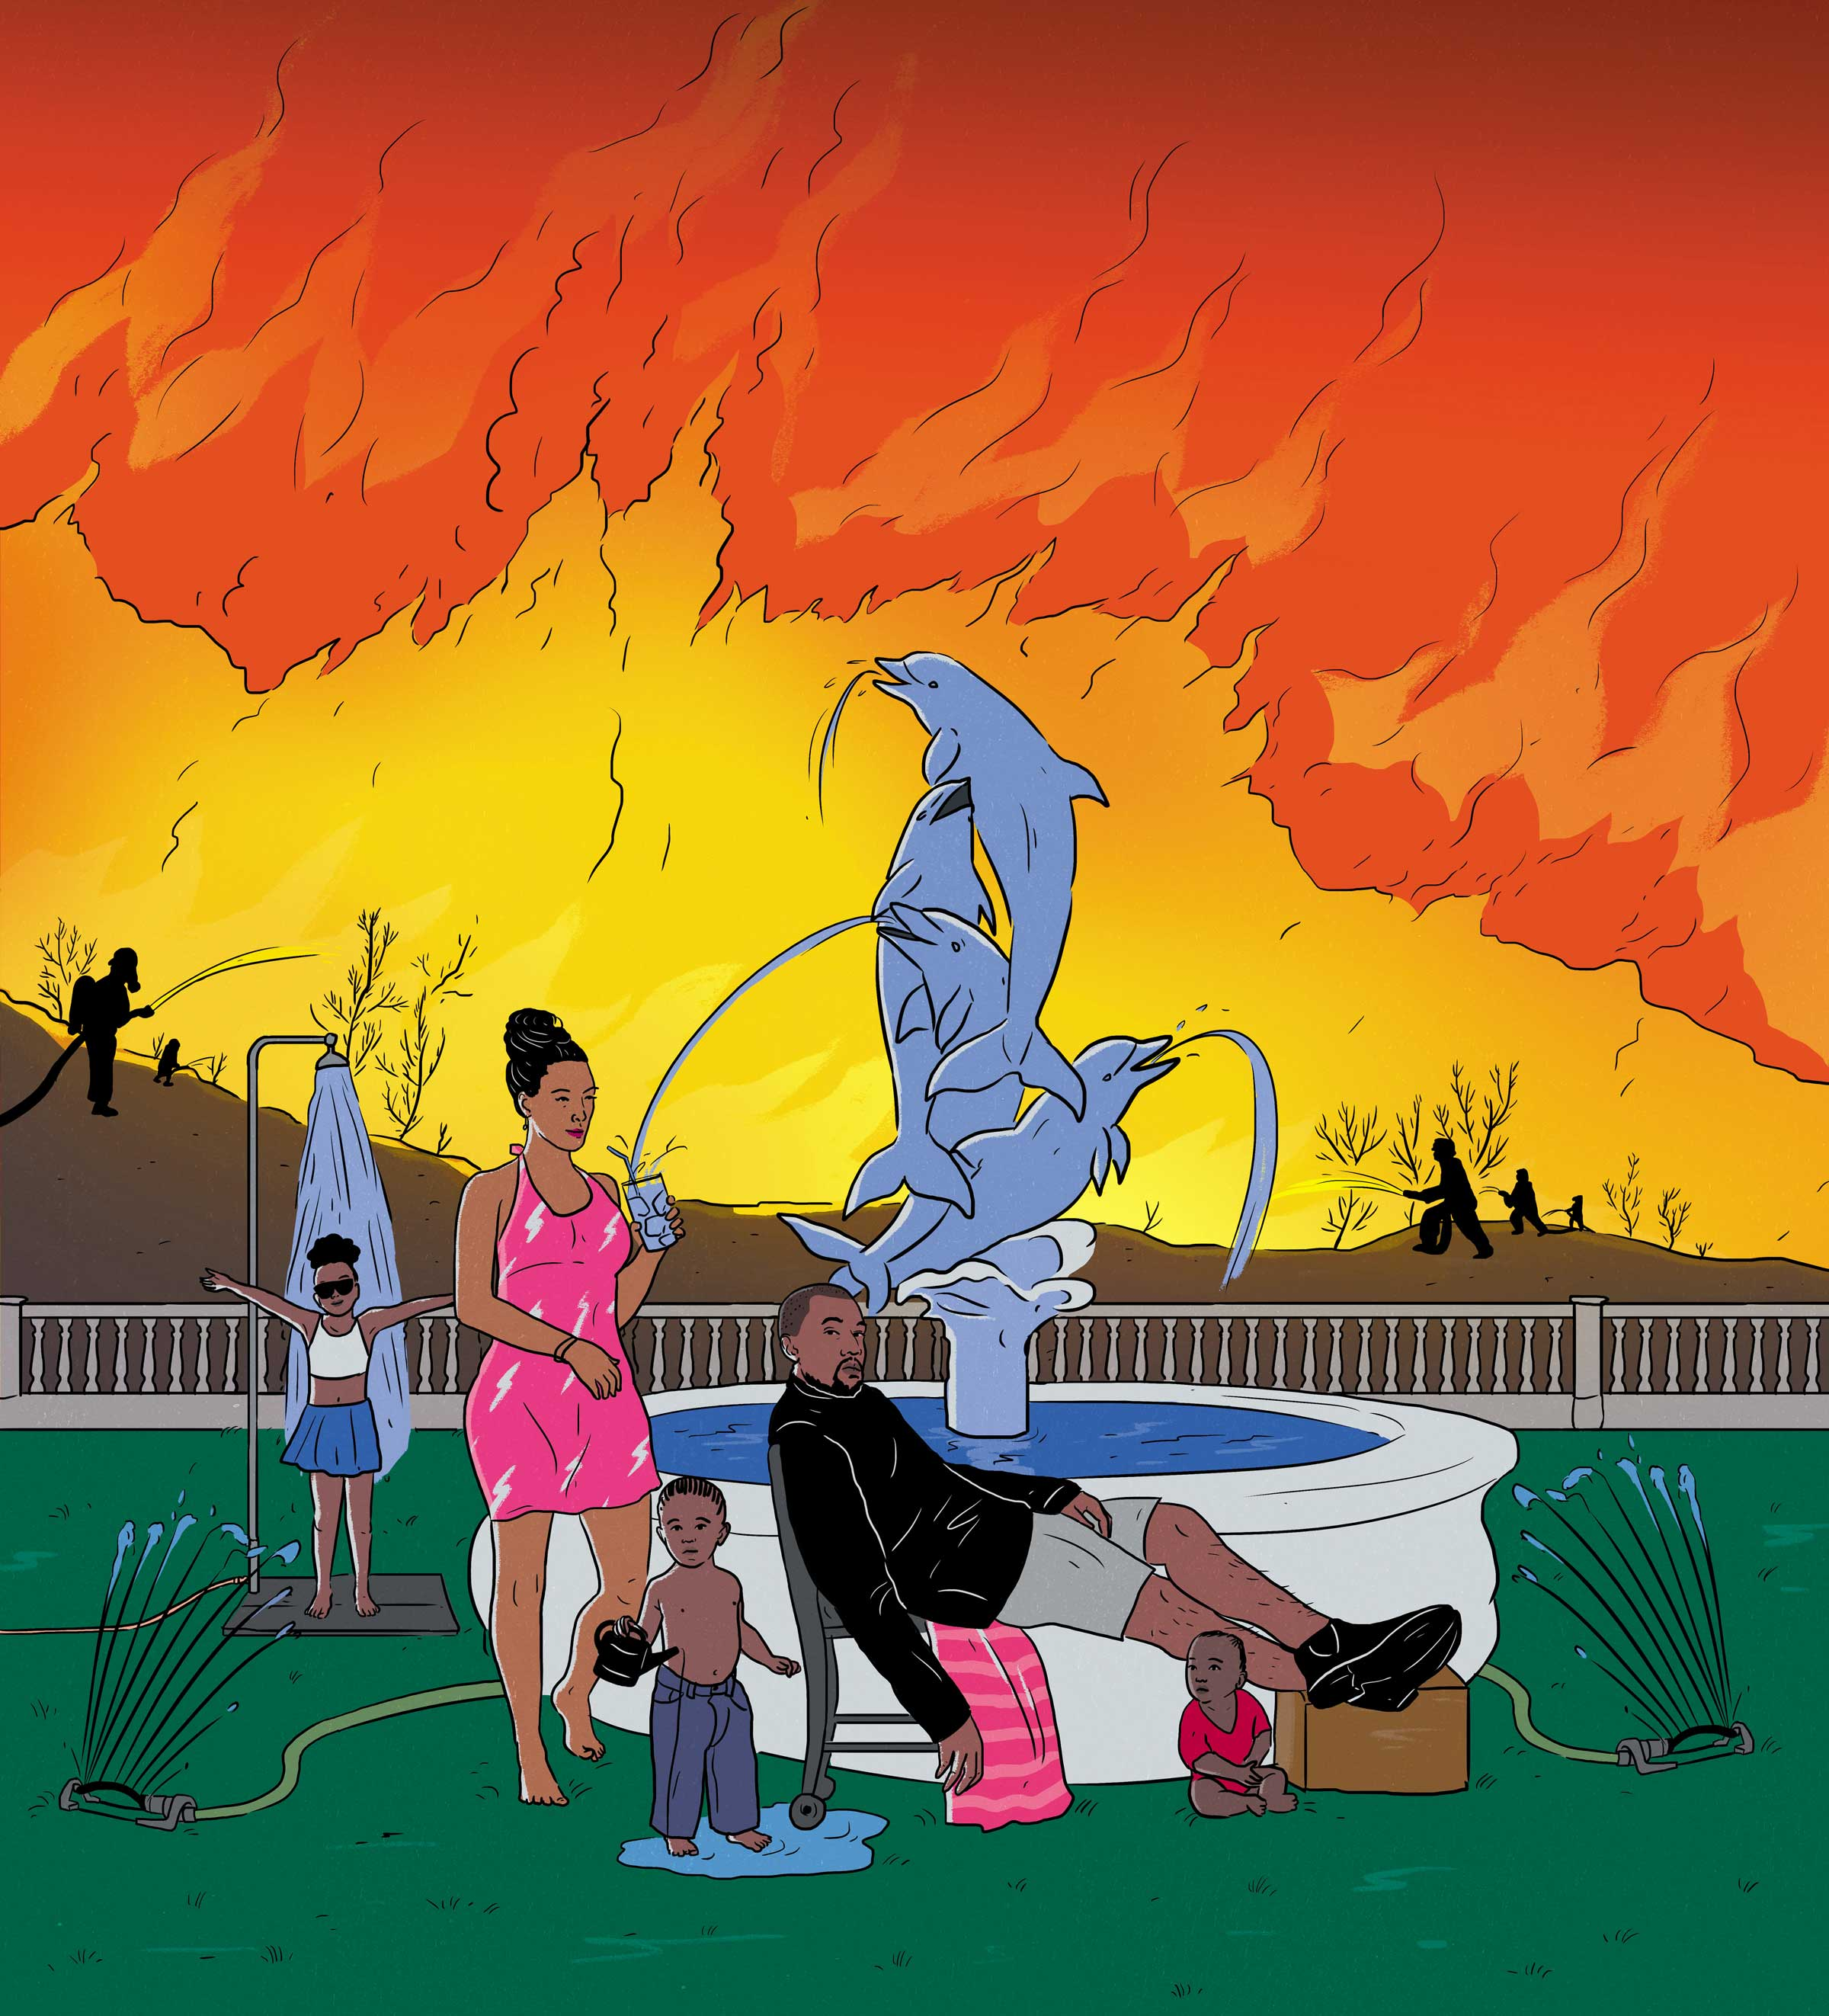 illustration of Kim Kardashian, Kanye West, and family on a grassy lawn, surrounding a fountain sculpture of dolphins, while firefighters fight a huge fire in the background